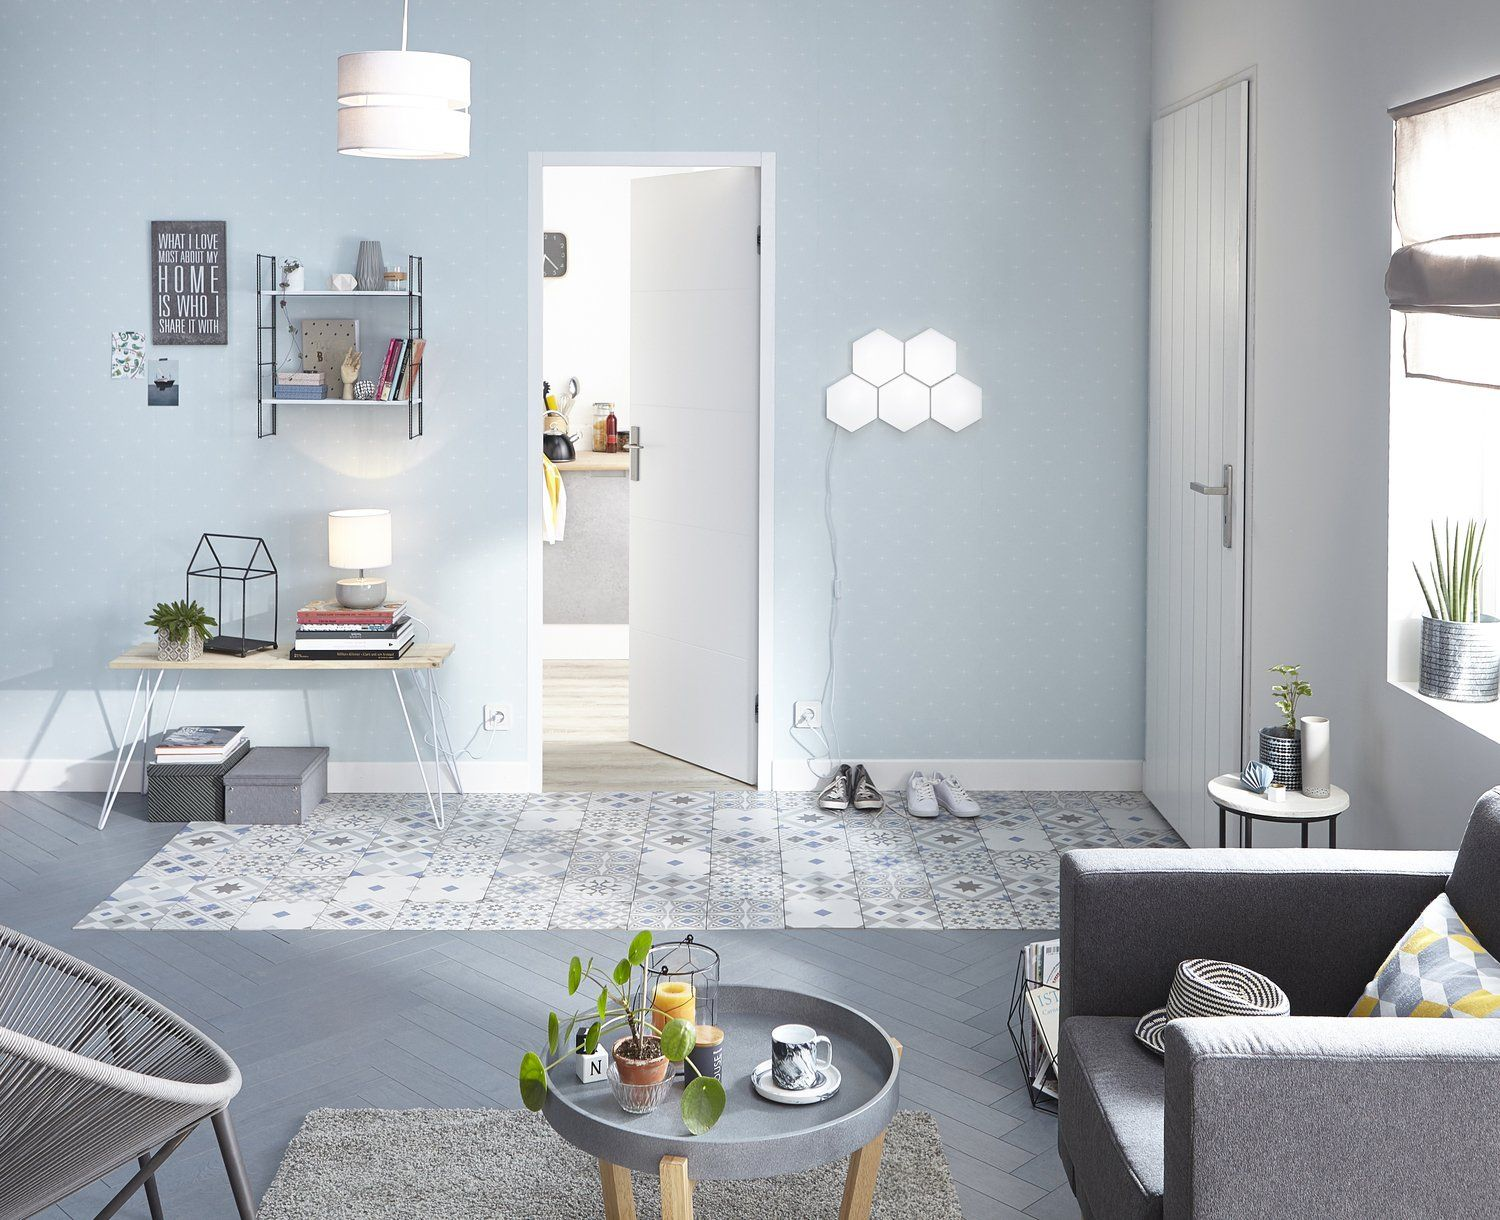 Couloir entree salon sejour bleu gris argent artens for Salon sejour contemporain